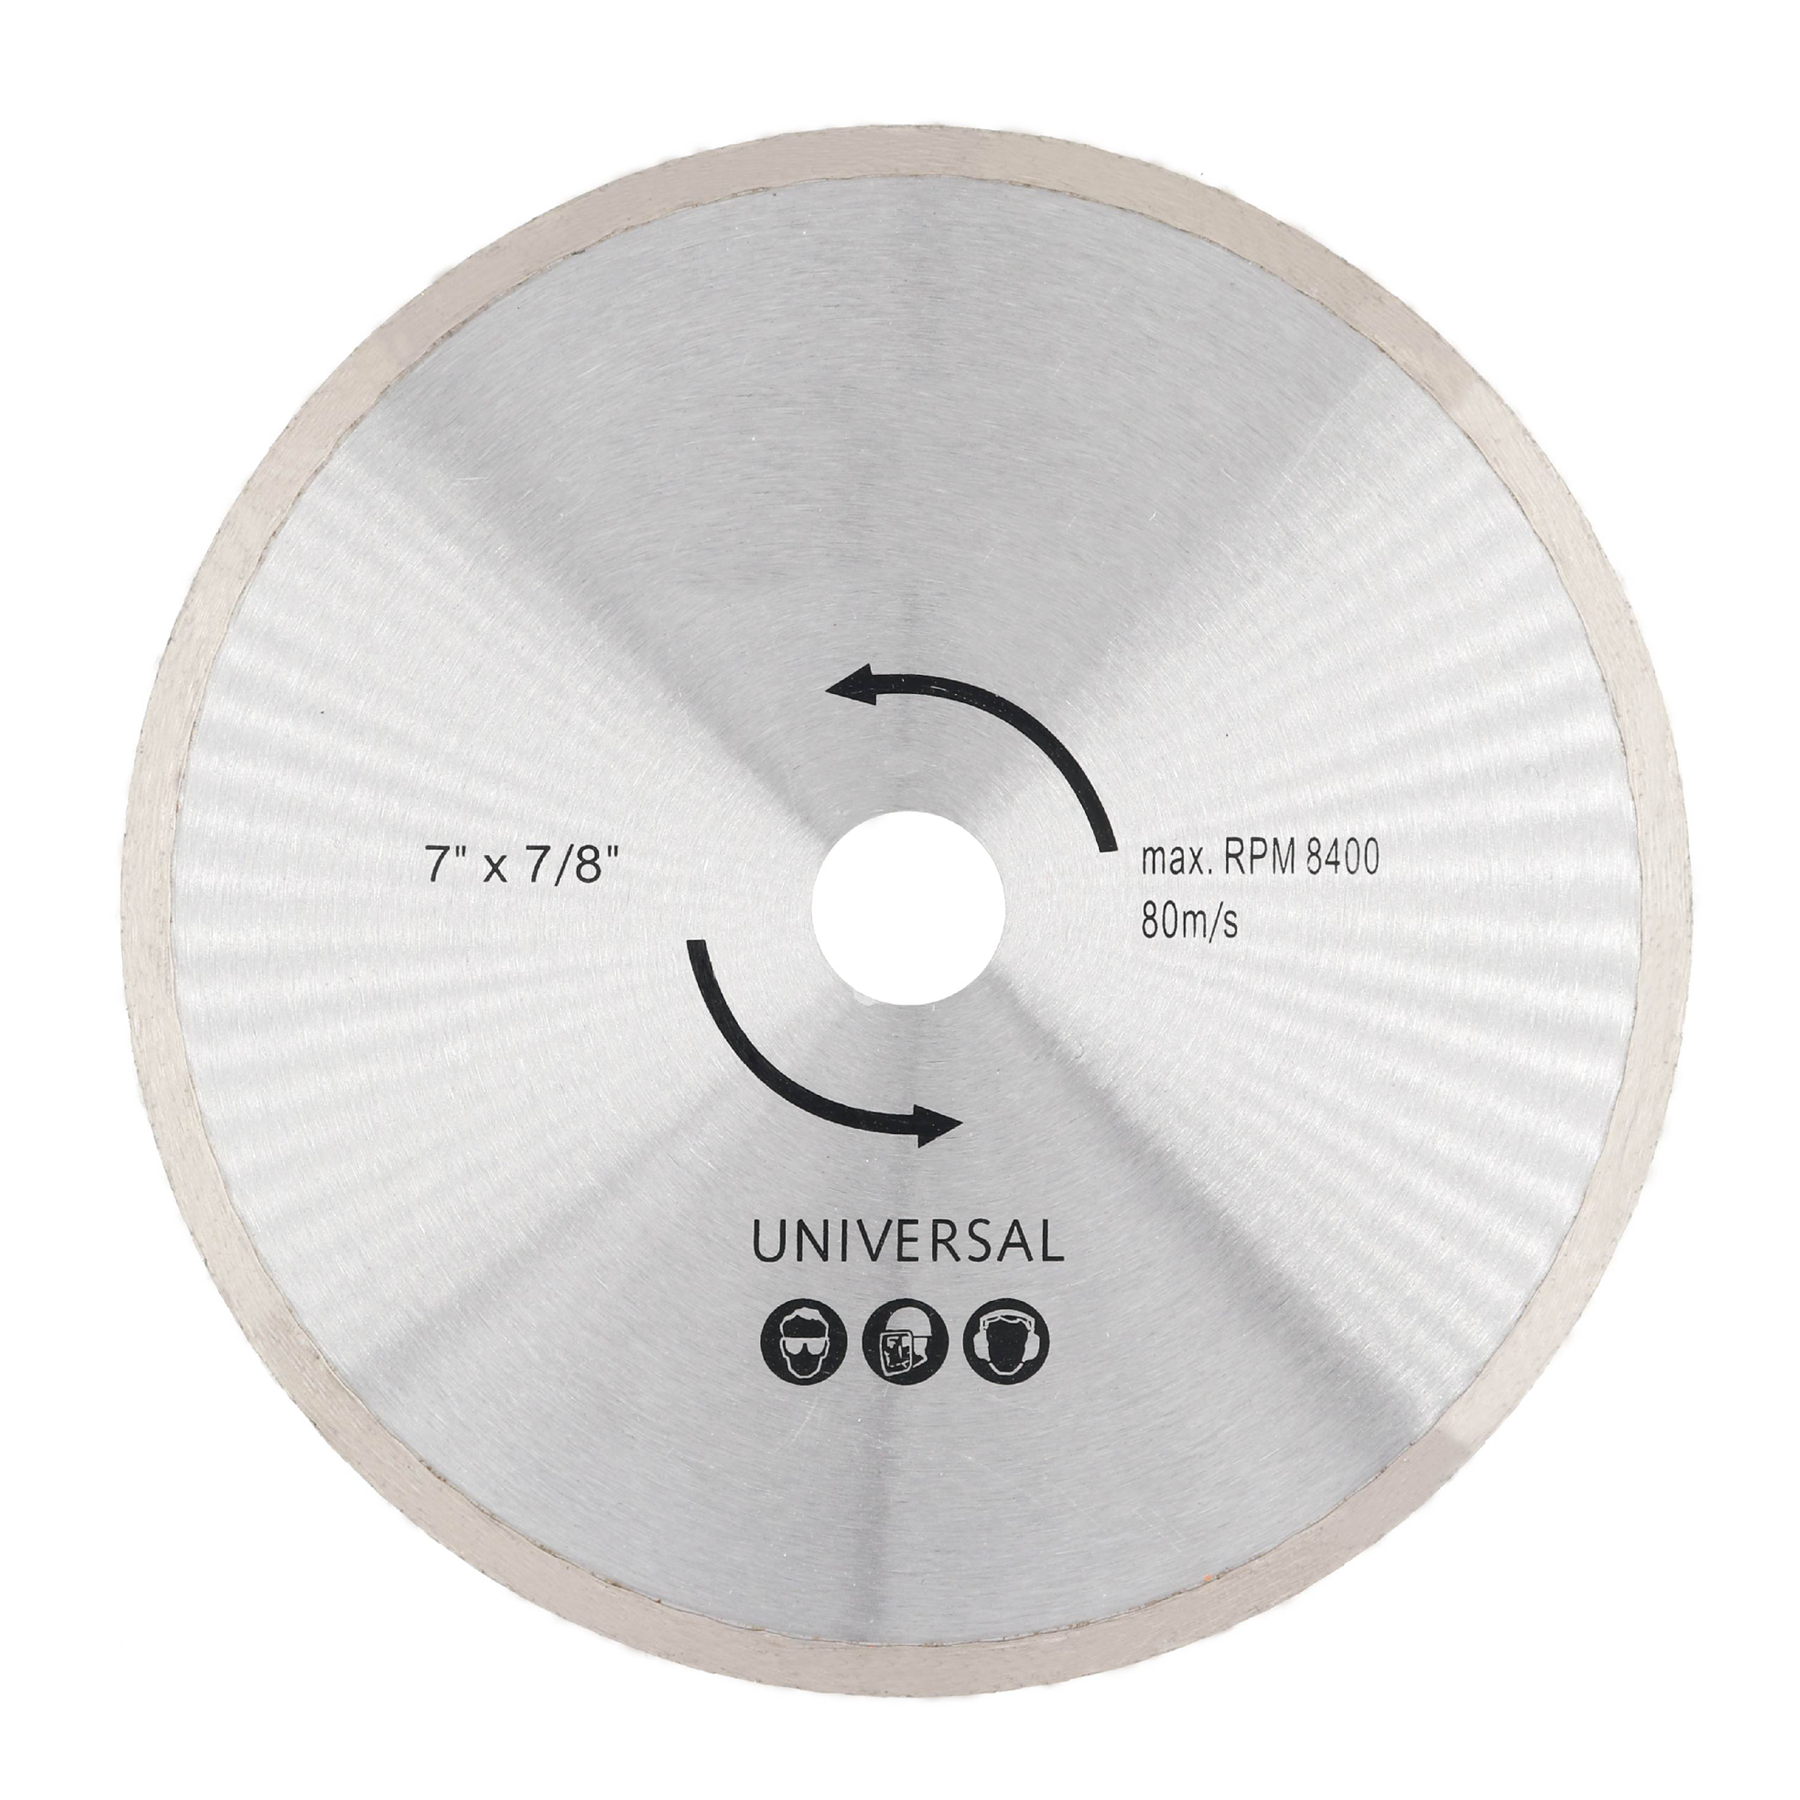 The New Listing For Pvc For Granite For Concrete Plated Blades Silent Diamond Saw Blade For Hard Stone